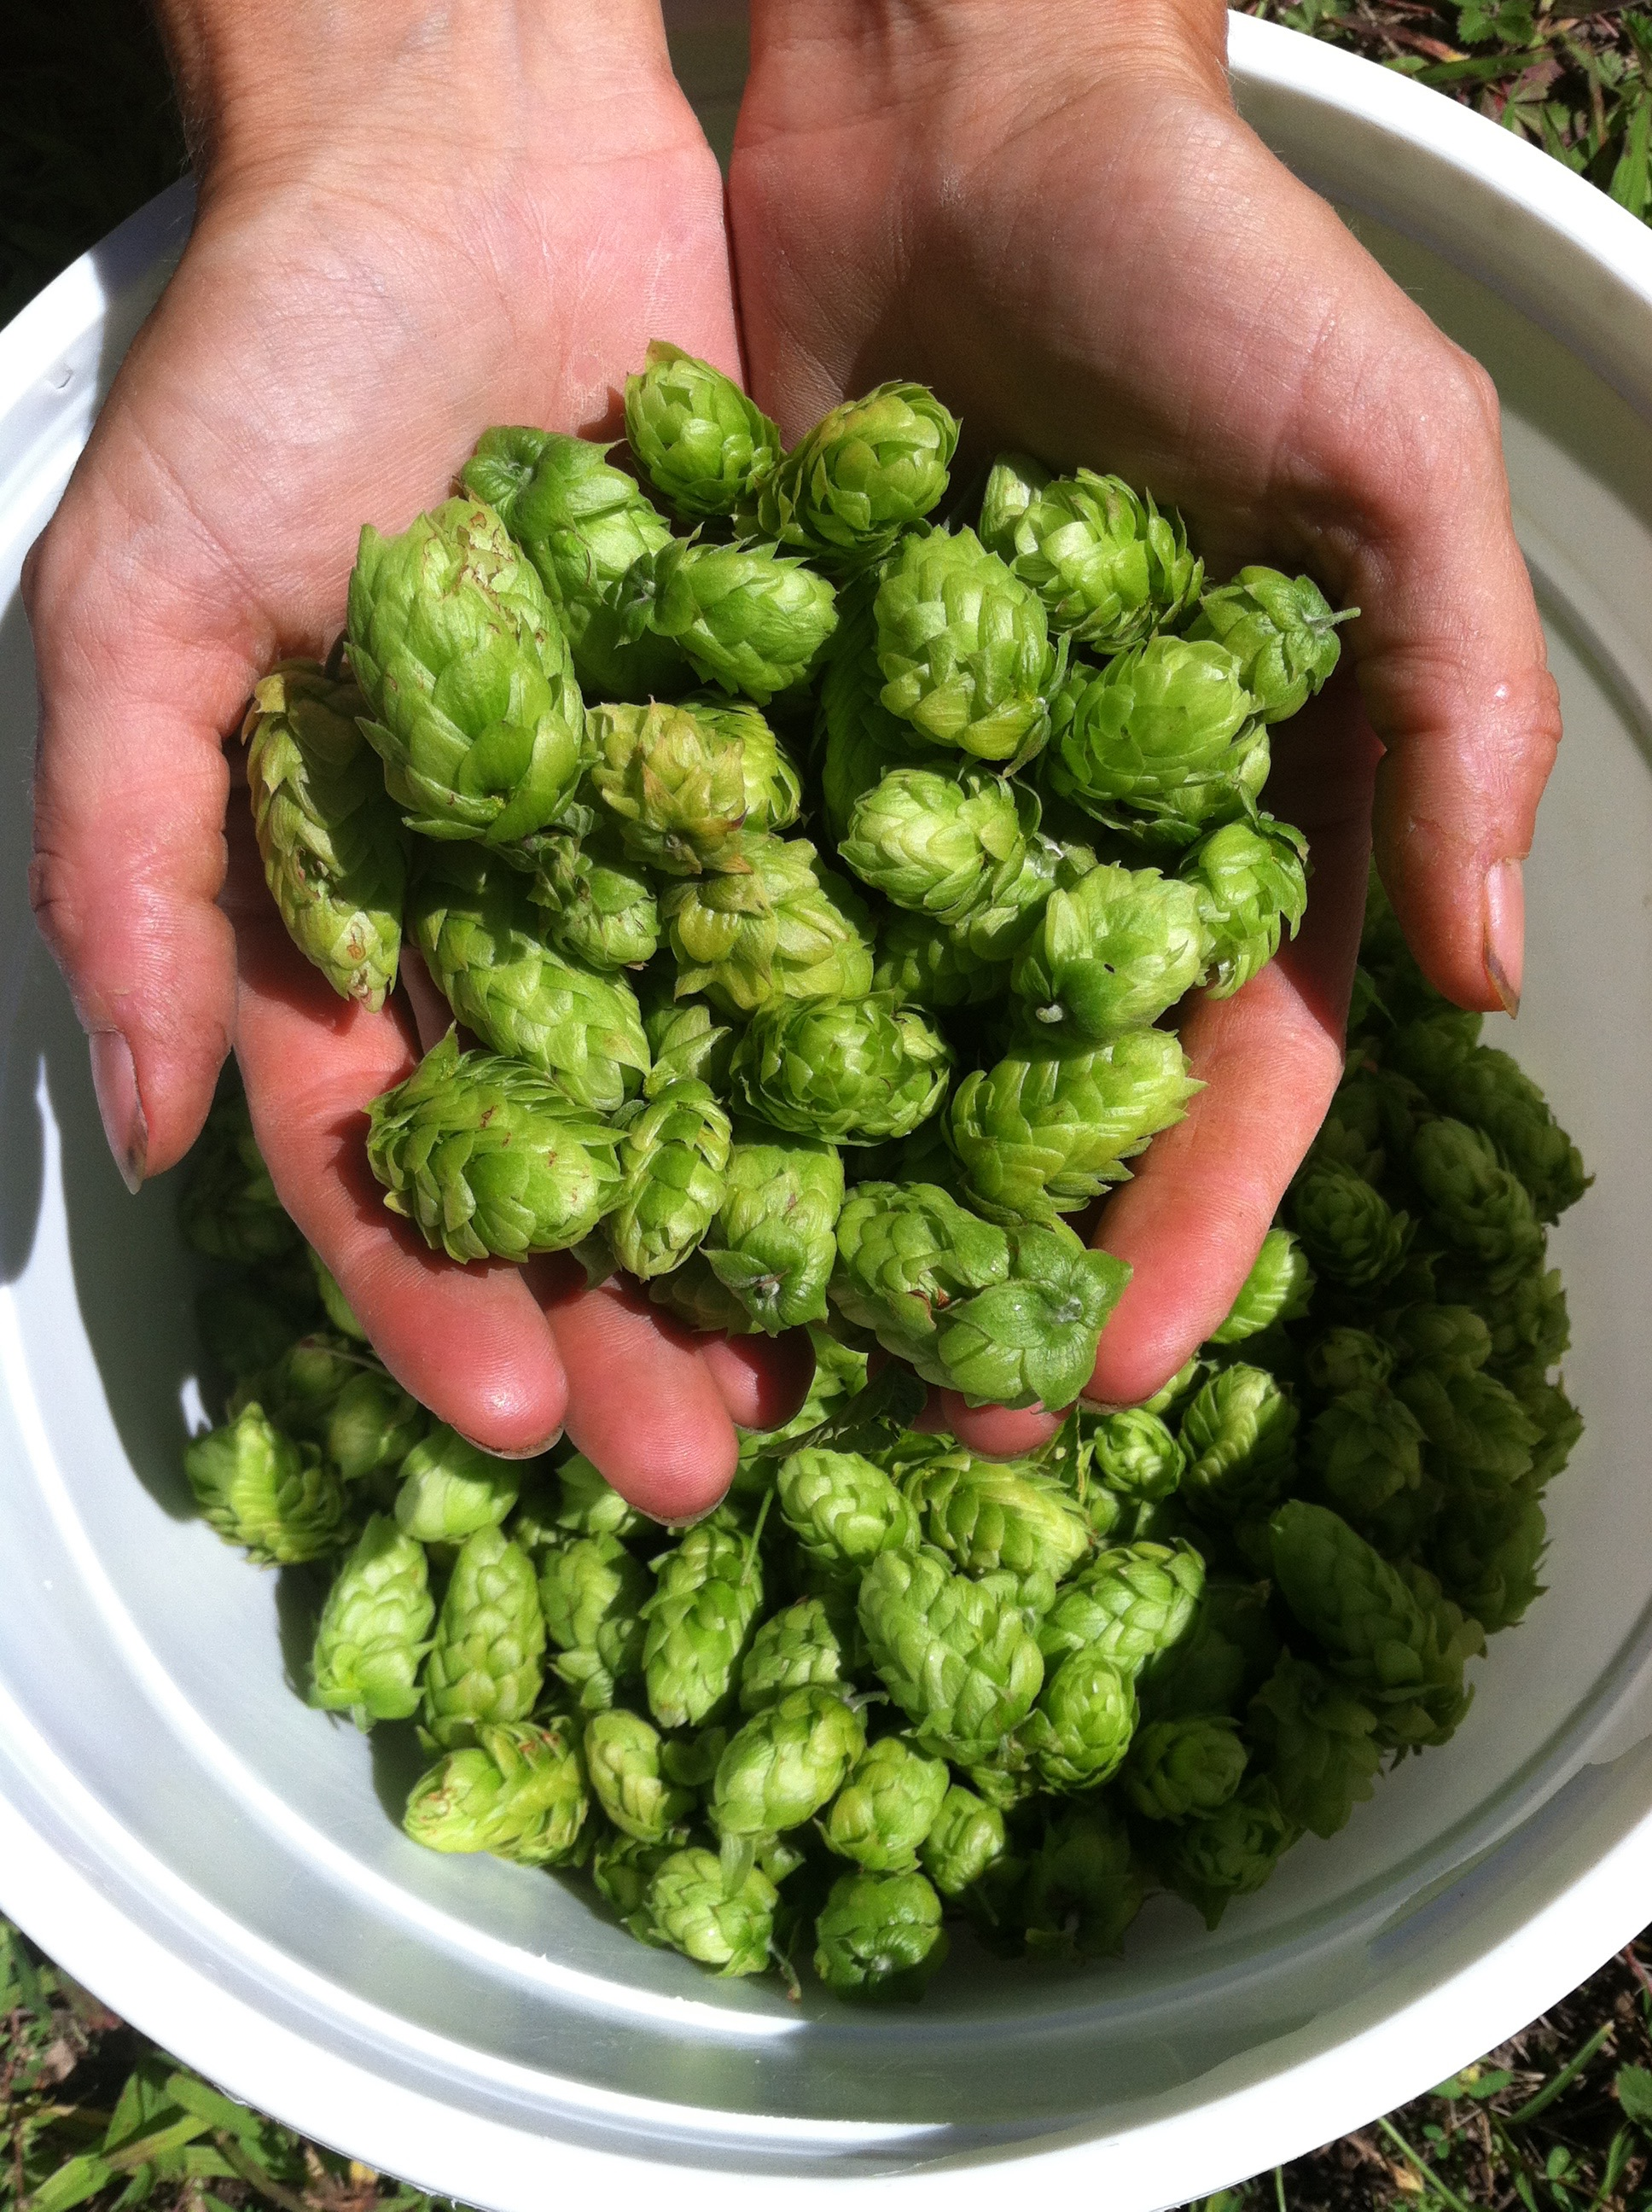 Holly's hops harvest